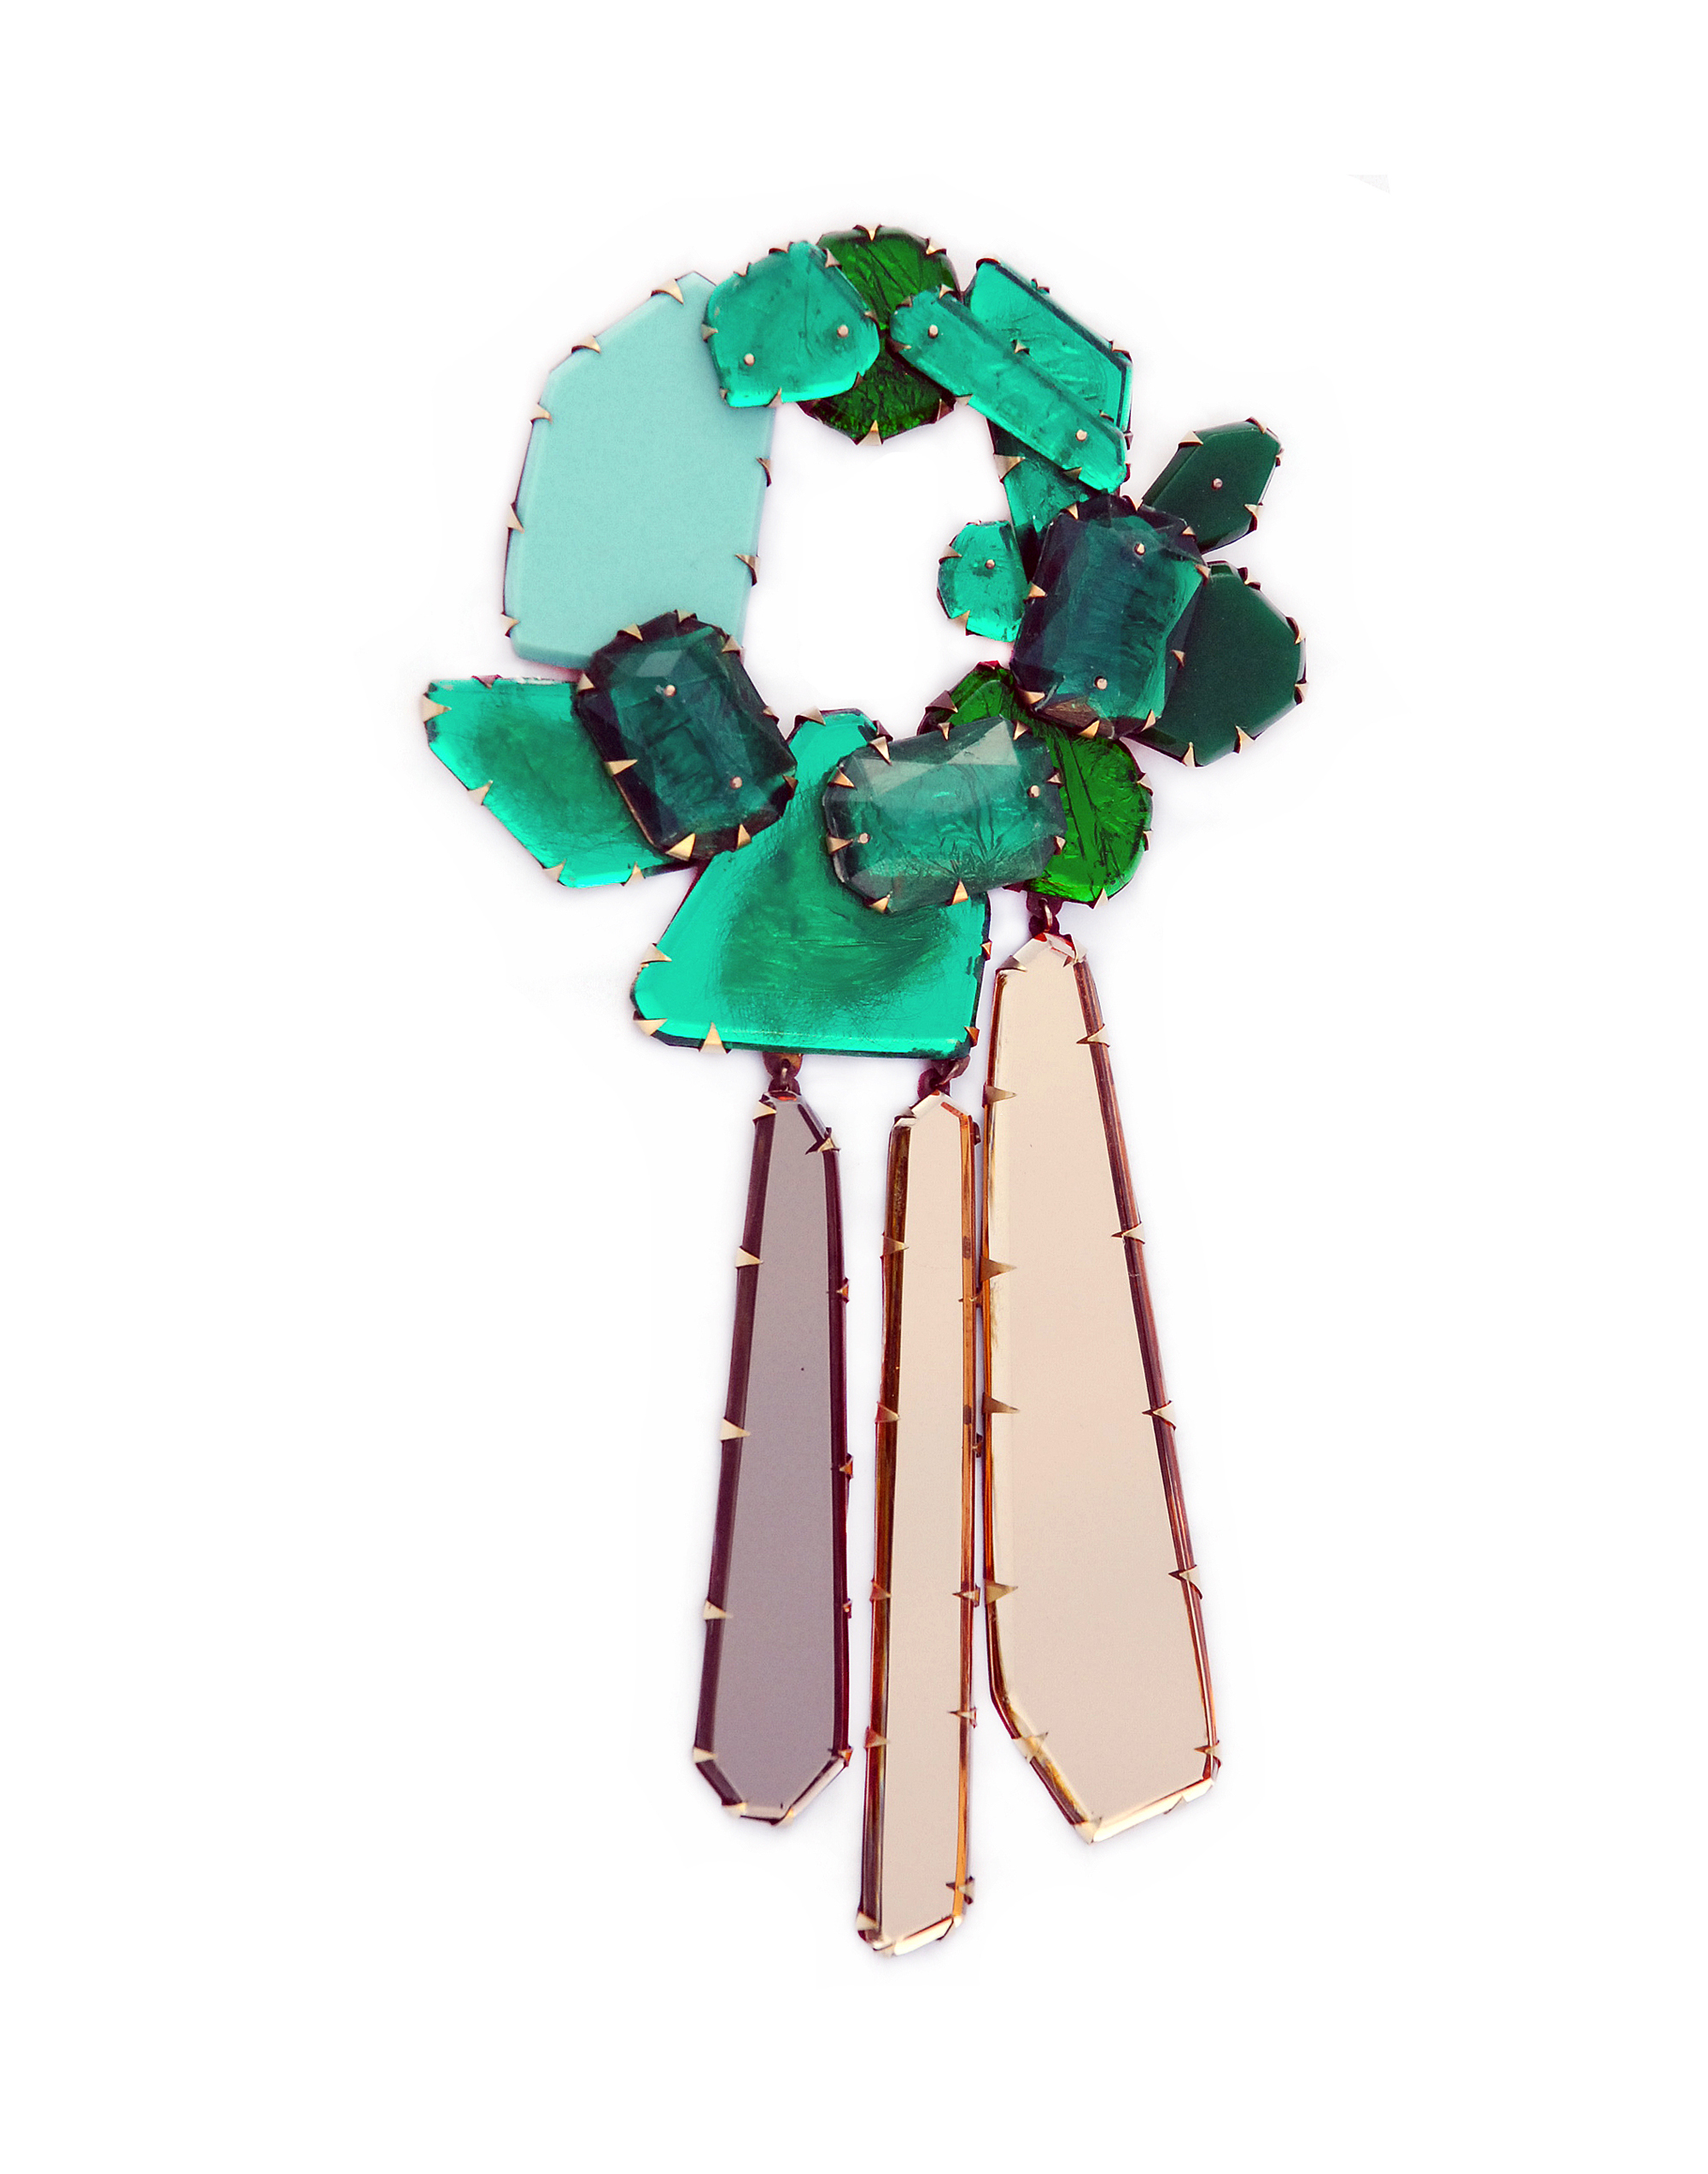 Nikki Couppee, Emerald Wreath Brooch, Plexiglass, brass, sterling silver, fine silver, steel